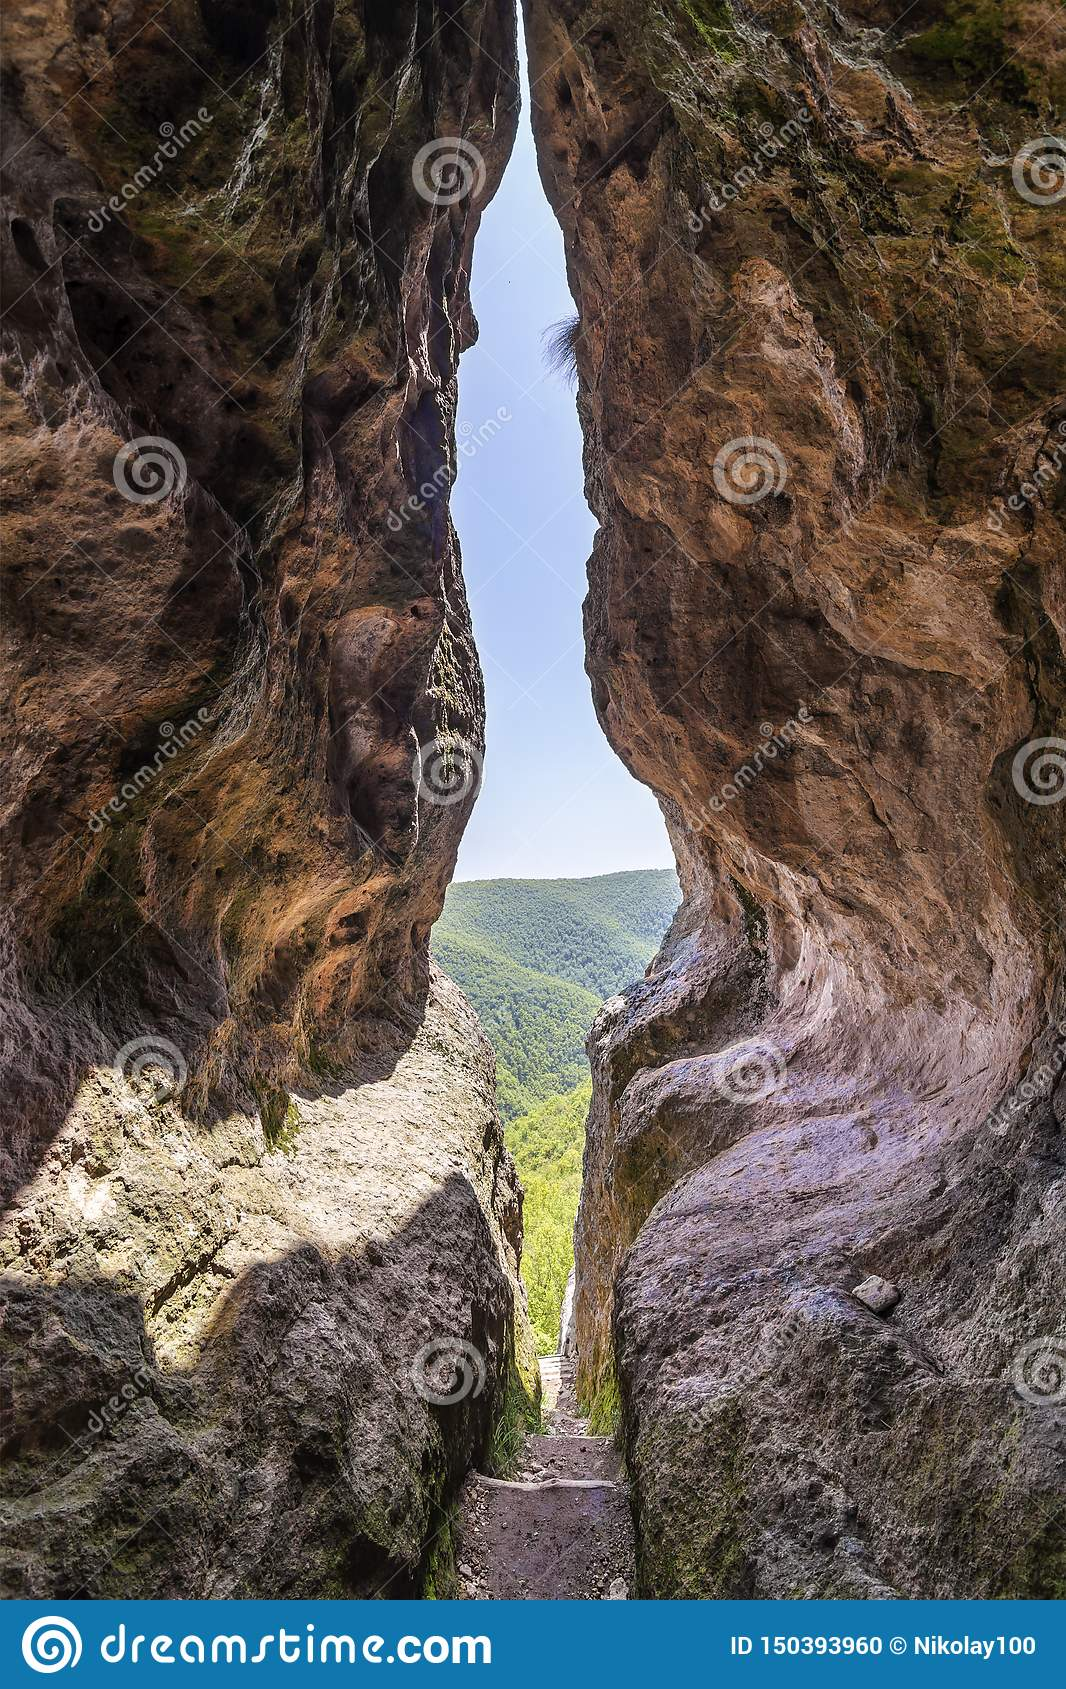 The womb cave also known as Utroba cave in Bulgaria